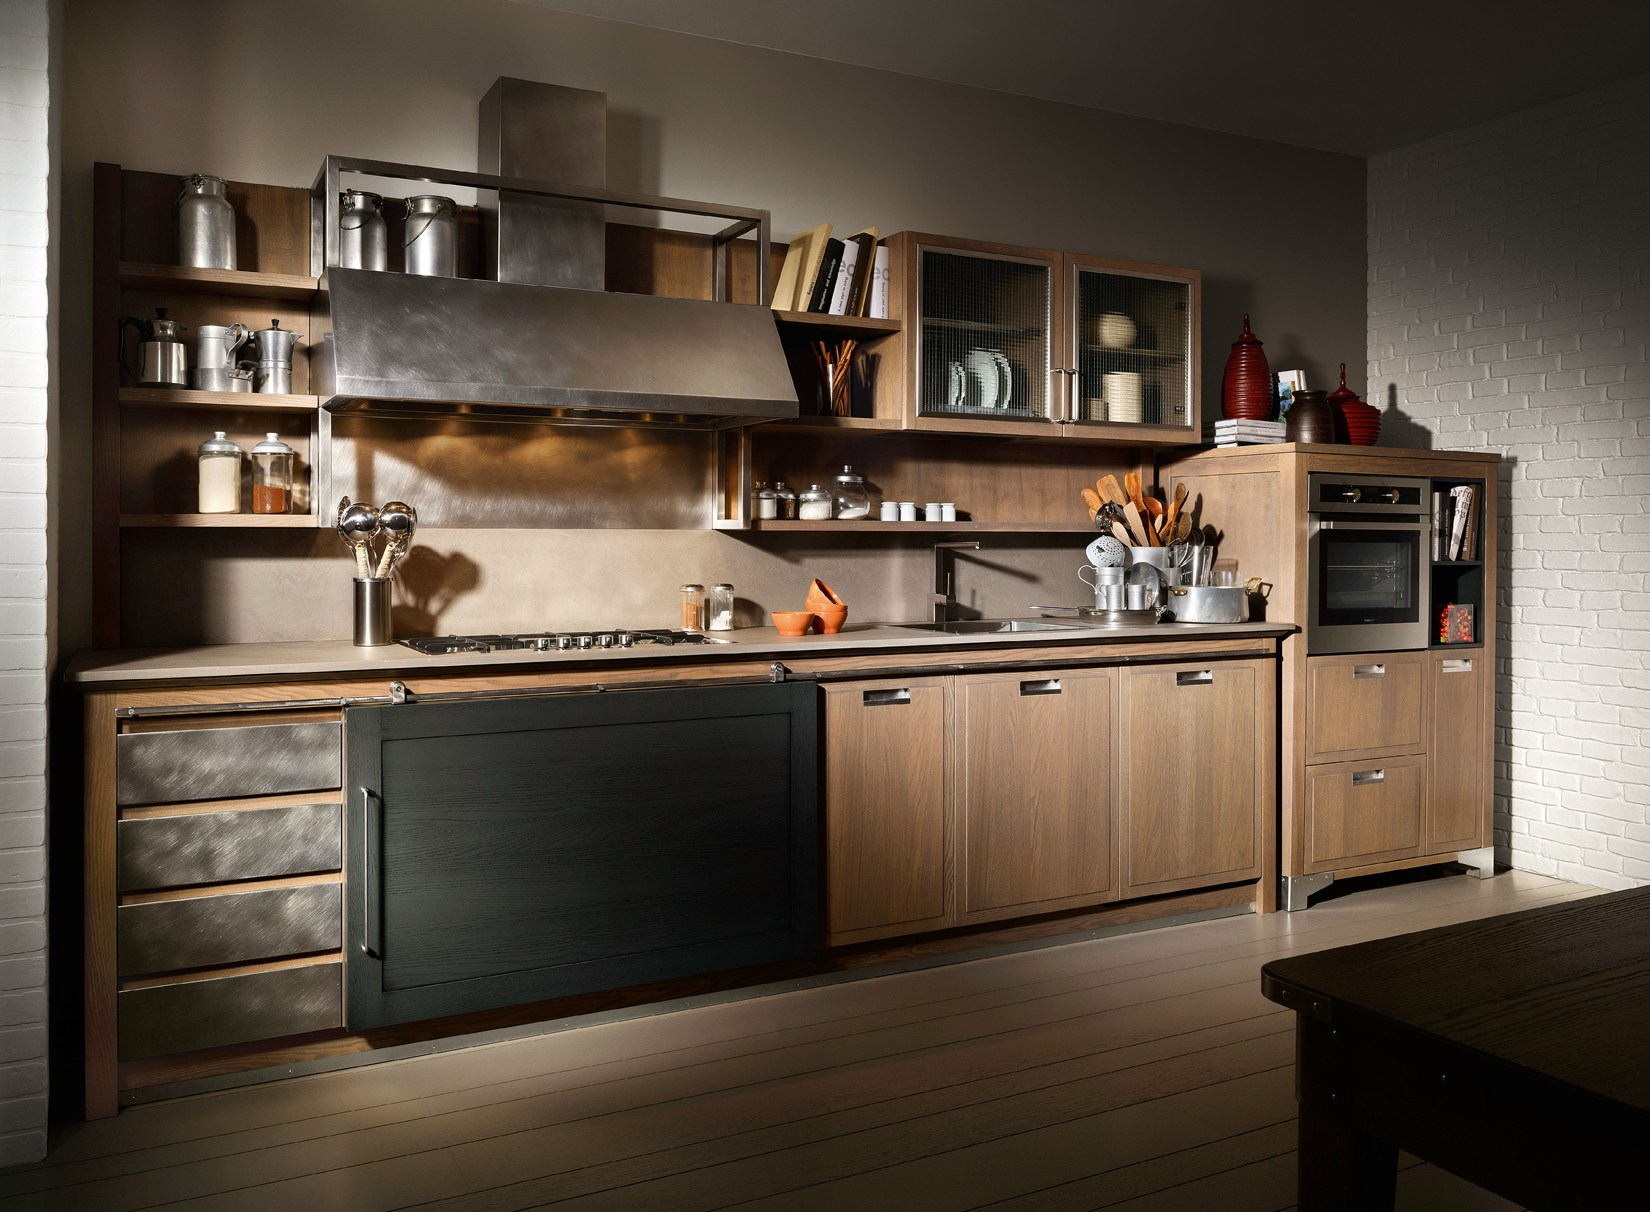 INDUSTRIAL CHIC #9C5E2F 1650 1212 Cucine Stile Industrial Chic